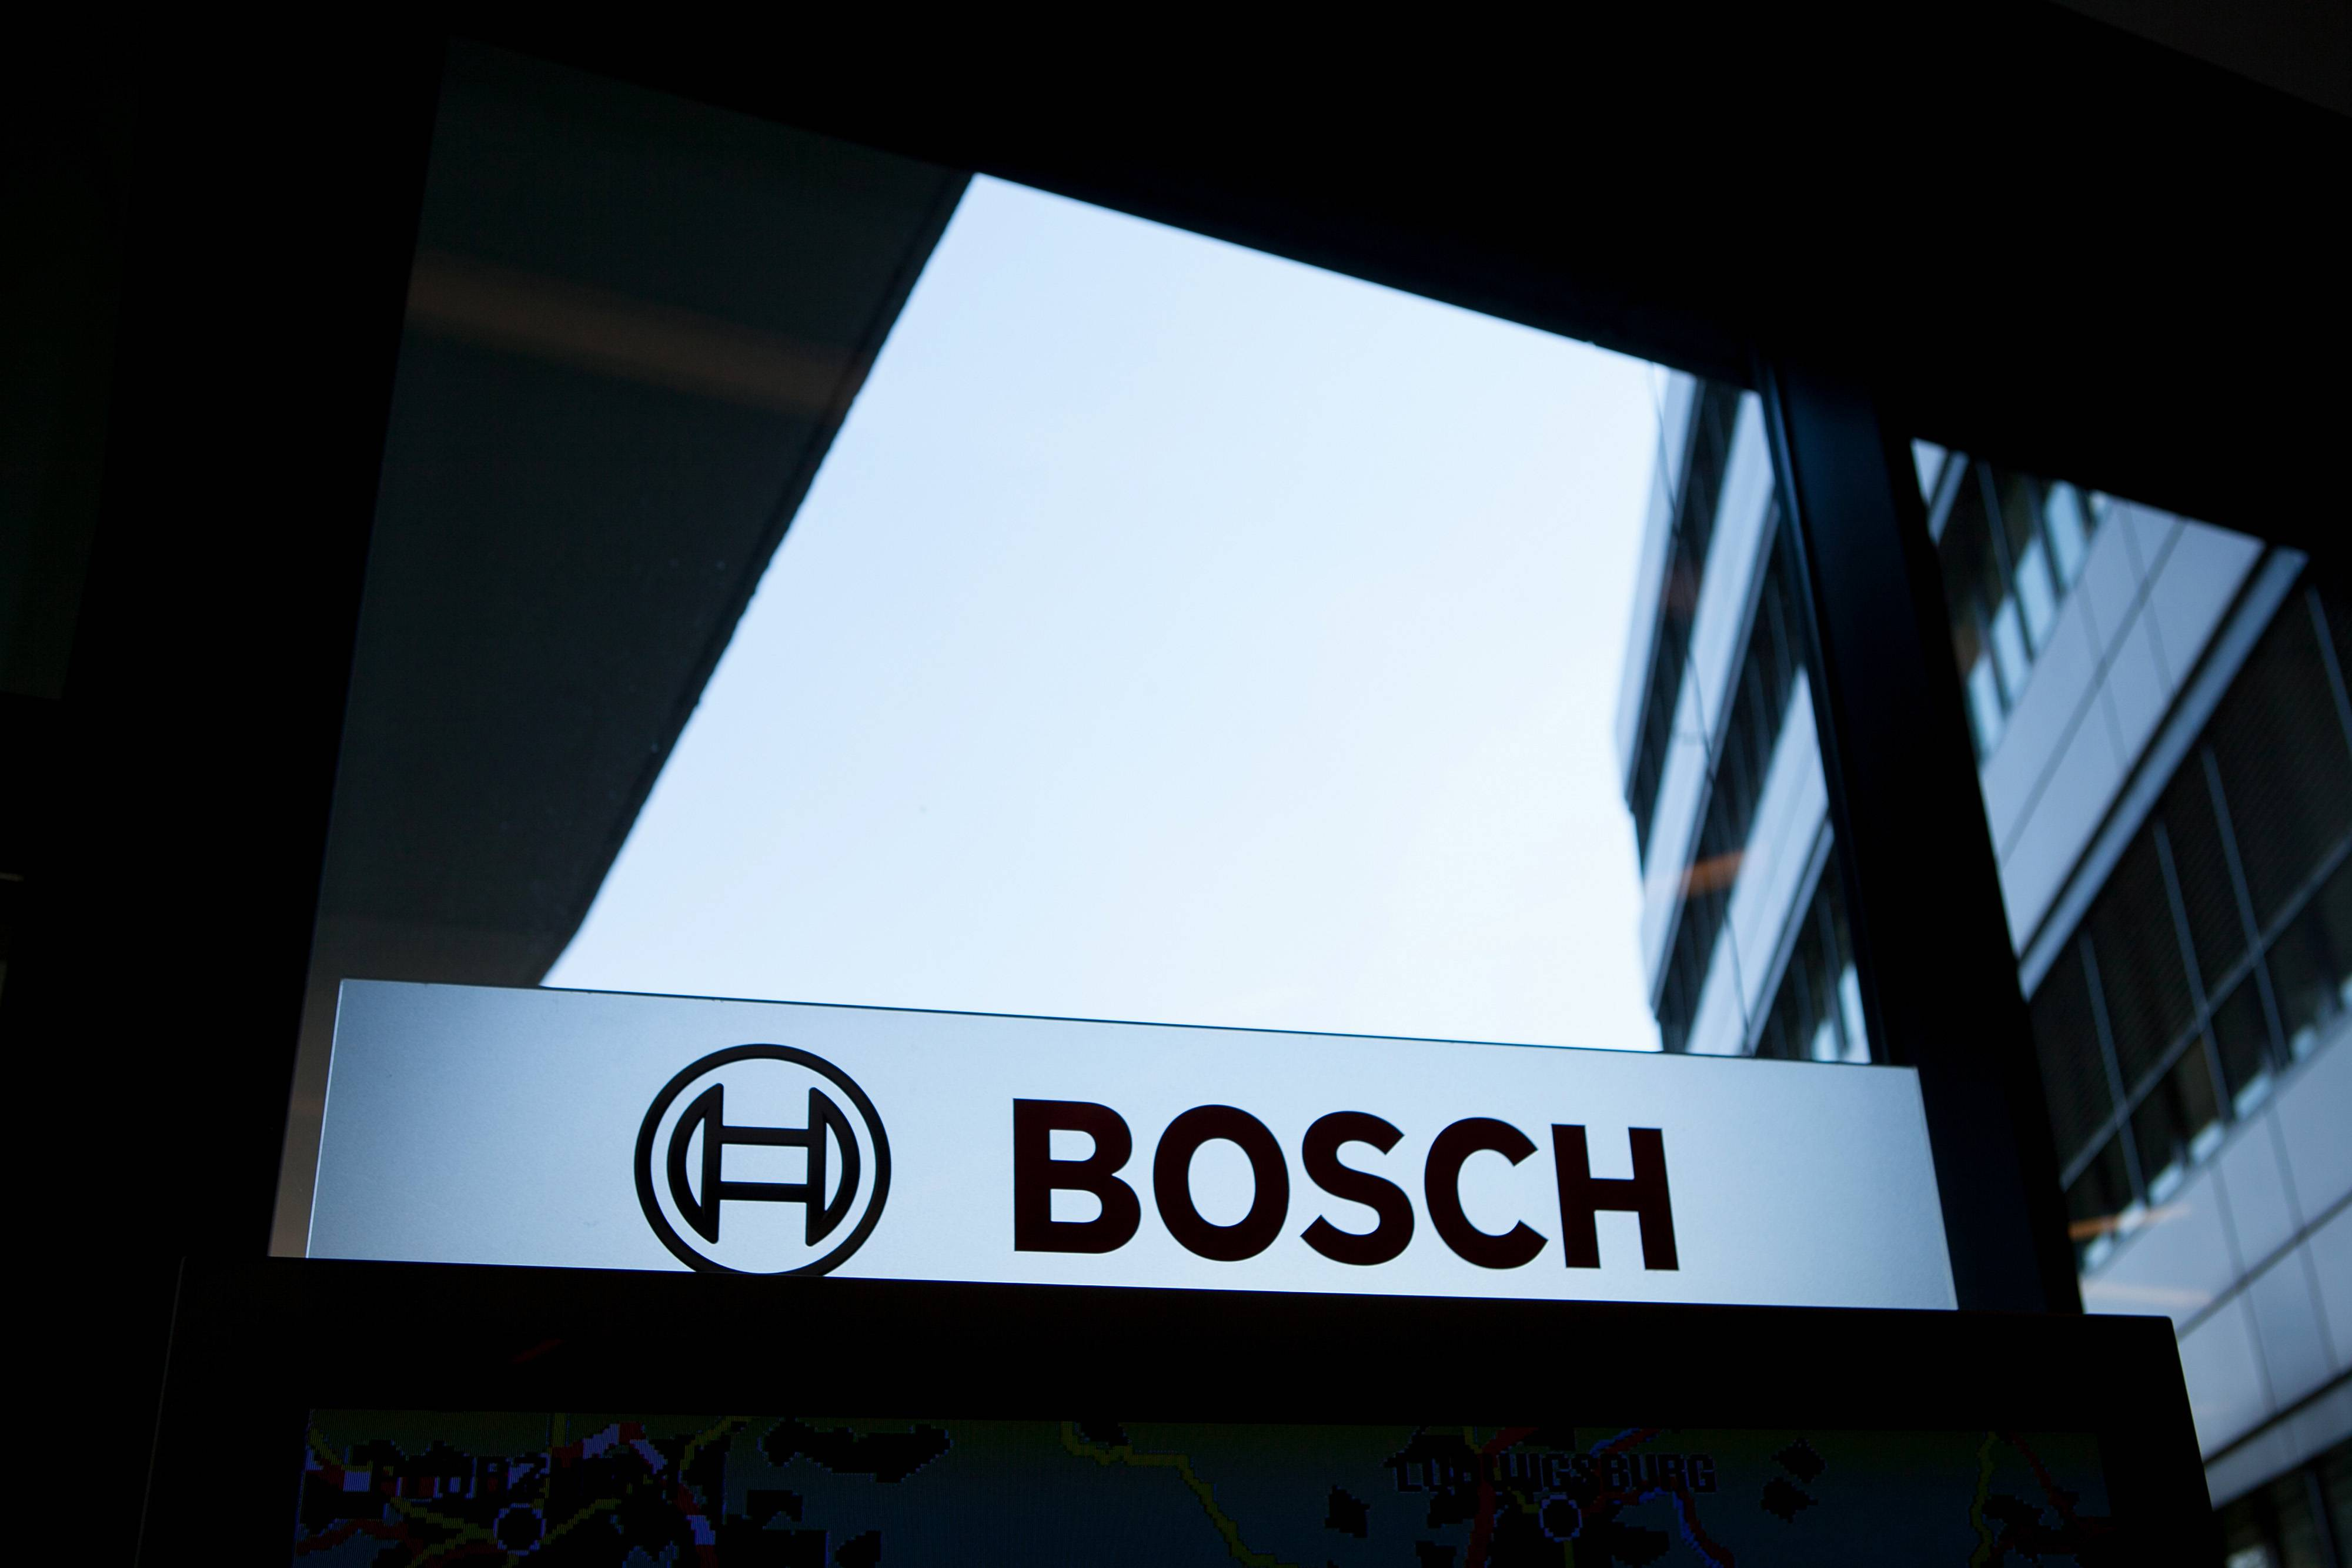 Robert Bosch GmbH, the world's largest car-parts maker and a producer of dishwashers and medical-device components, is plotting inroads into the world of Google Inc. with possible acquisitions.